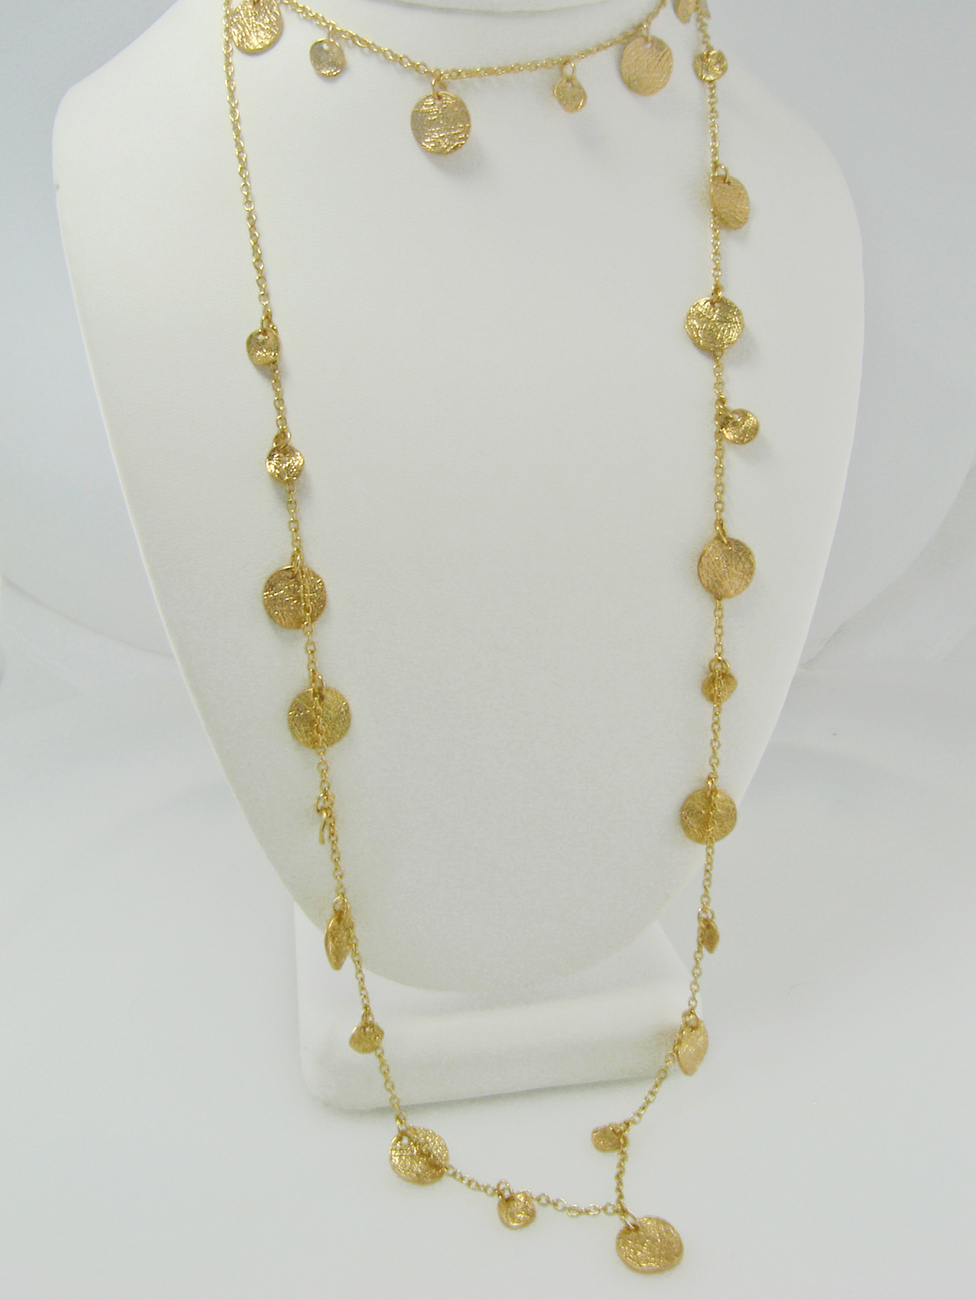 Courtney Cox Cougar Town - Textured Disc Necklace Shimmering Gold